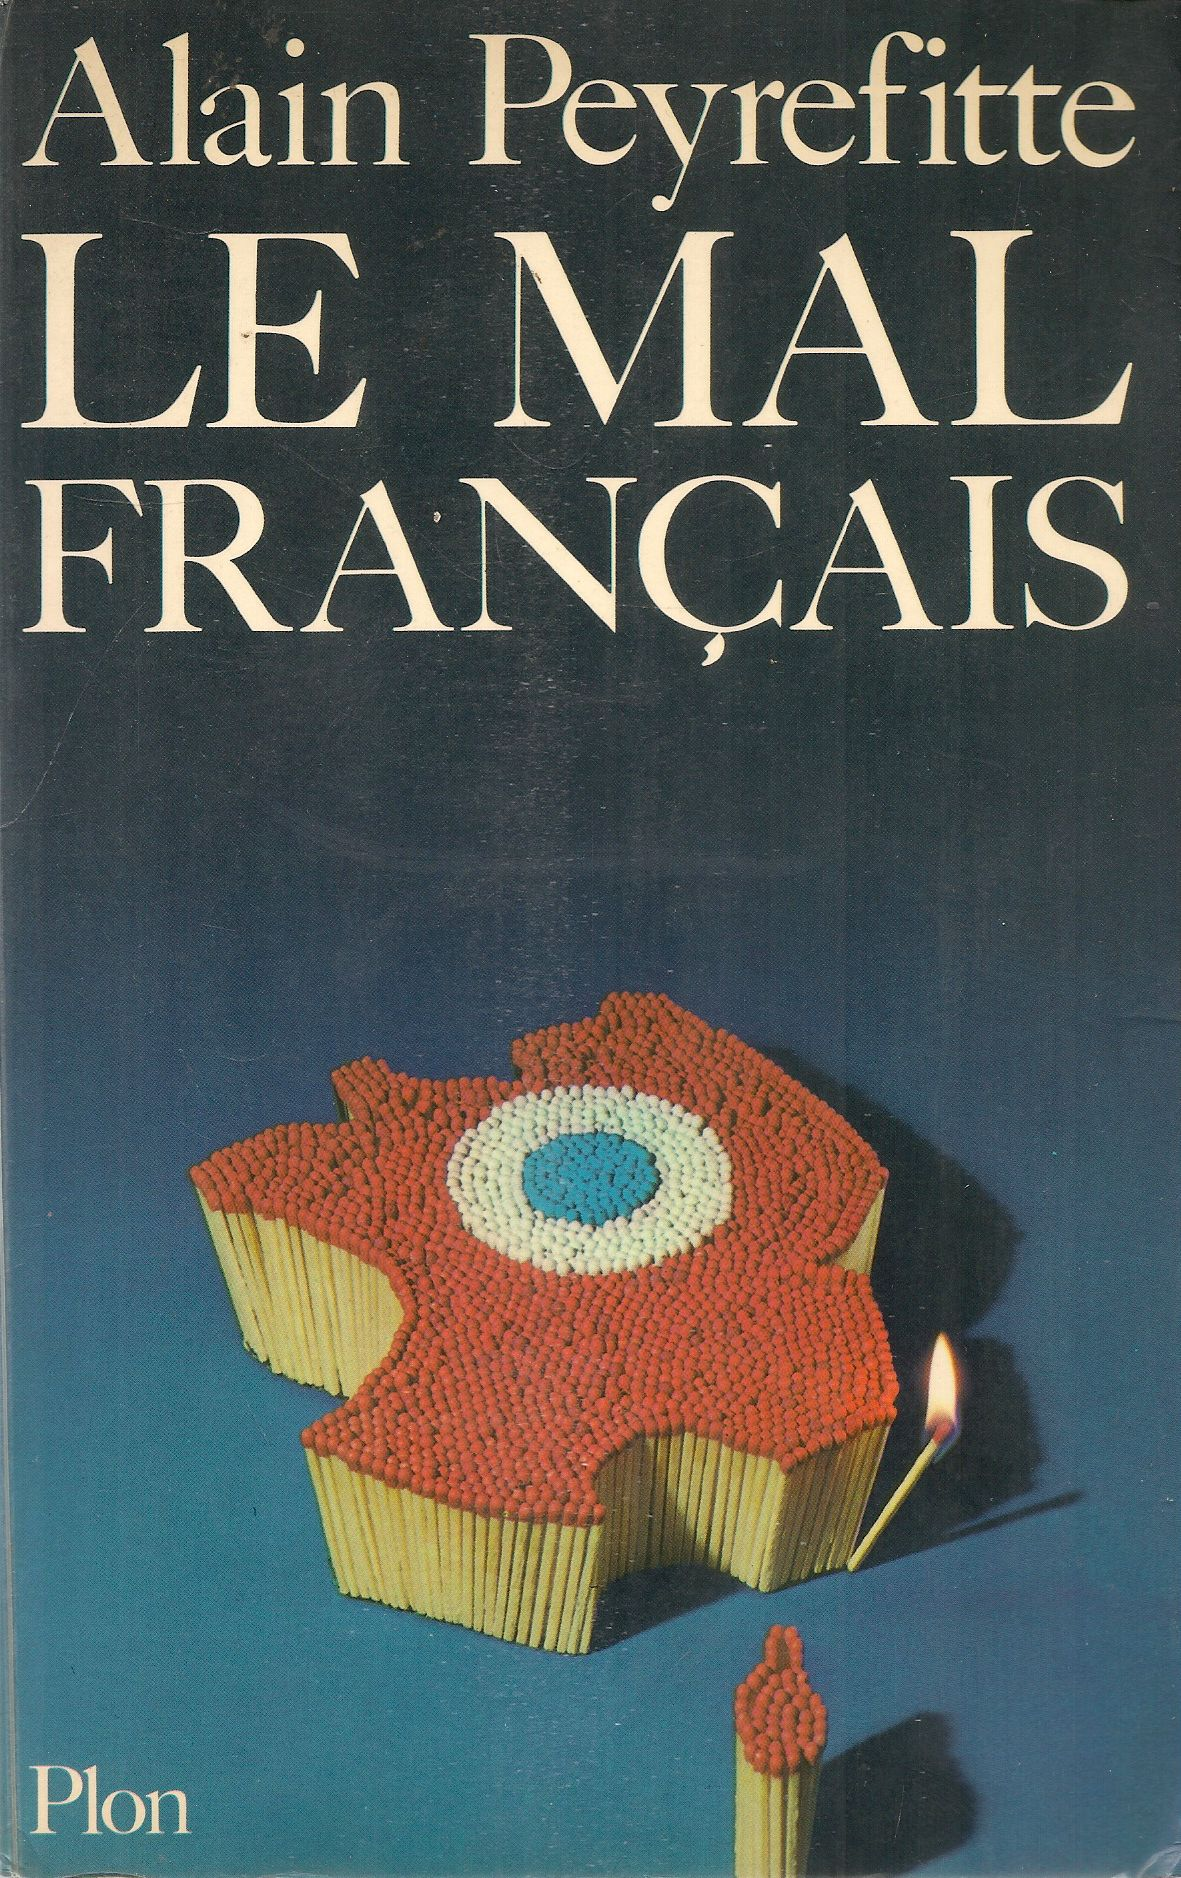 LE MAL FRANCAIS - ALAIN PEYREFITTE - FRENCH TEXT